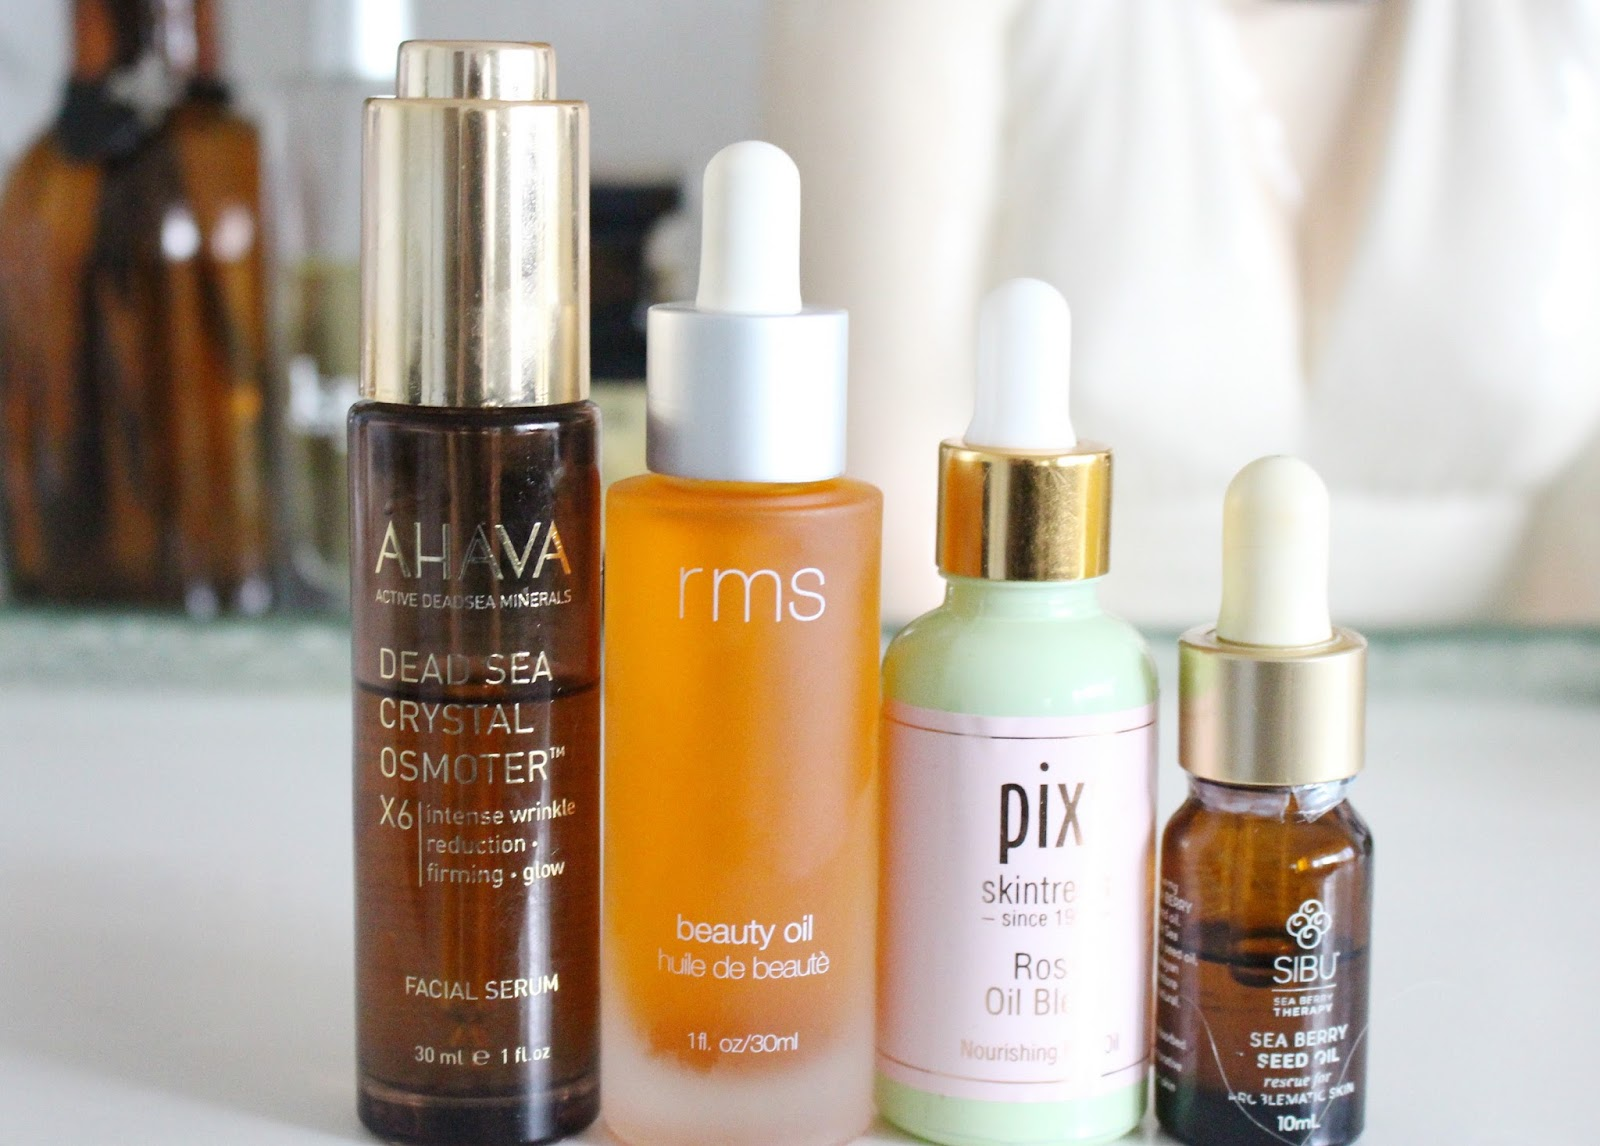 beauty oils for combination skin, facial oils for combination skin